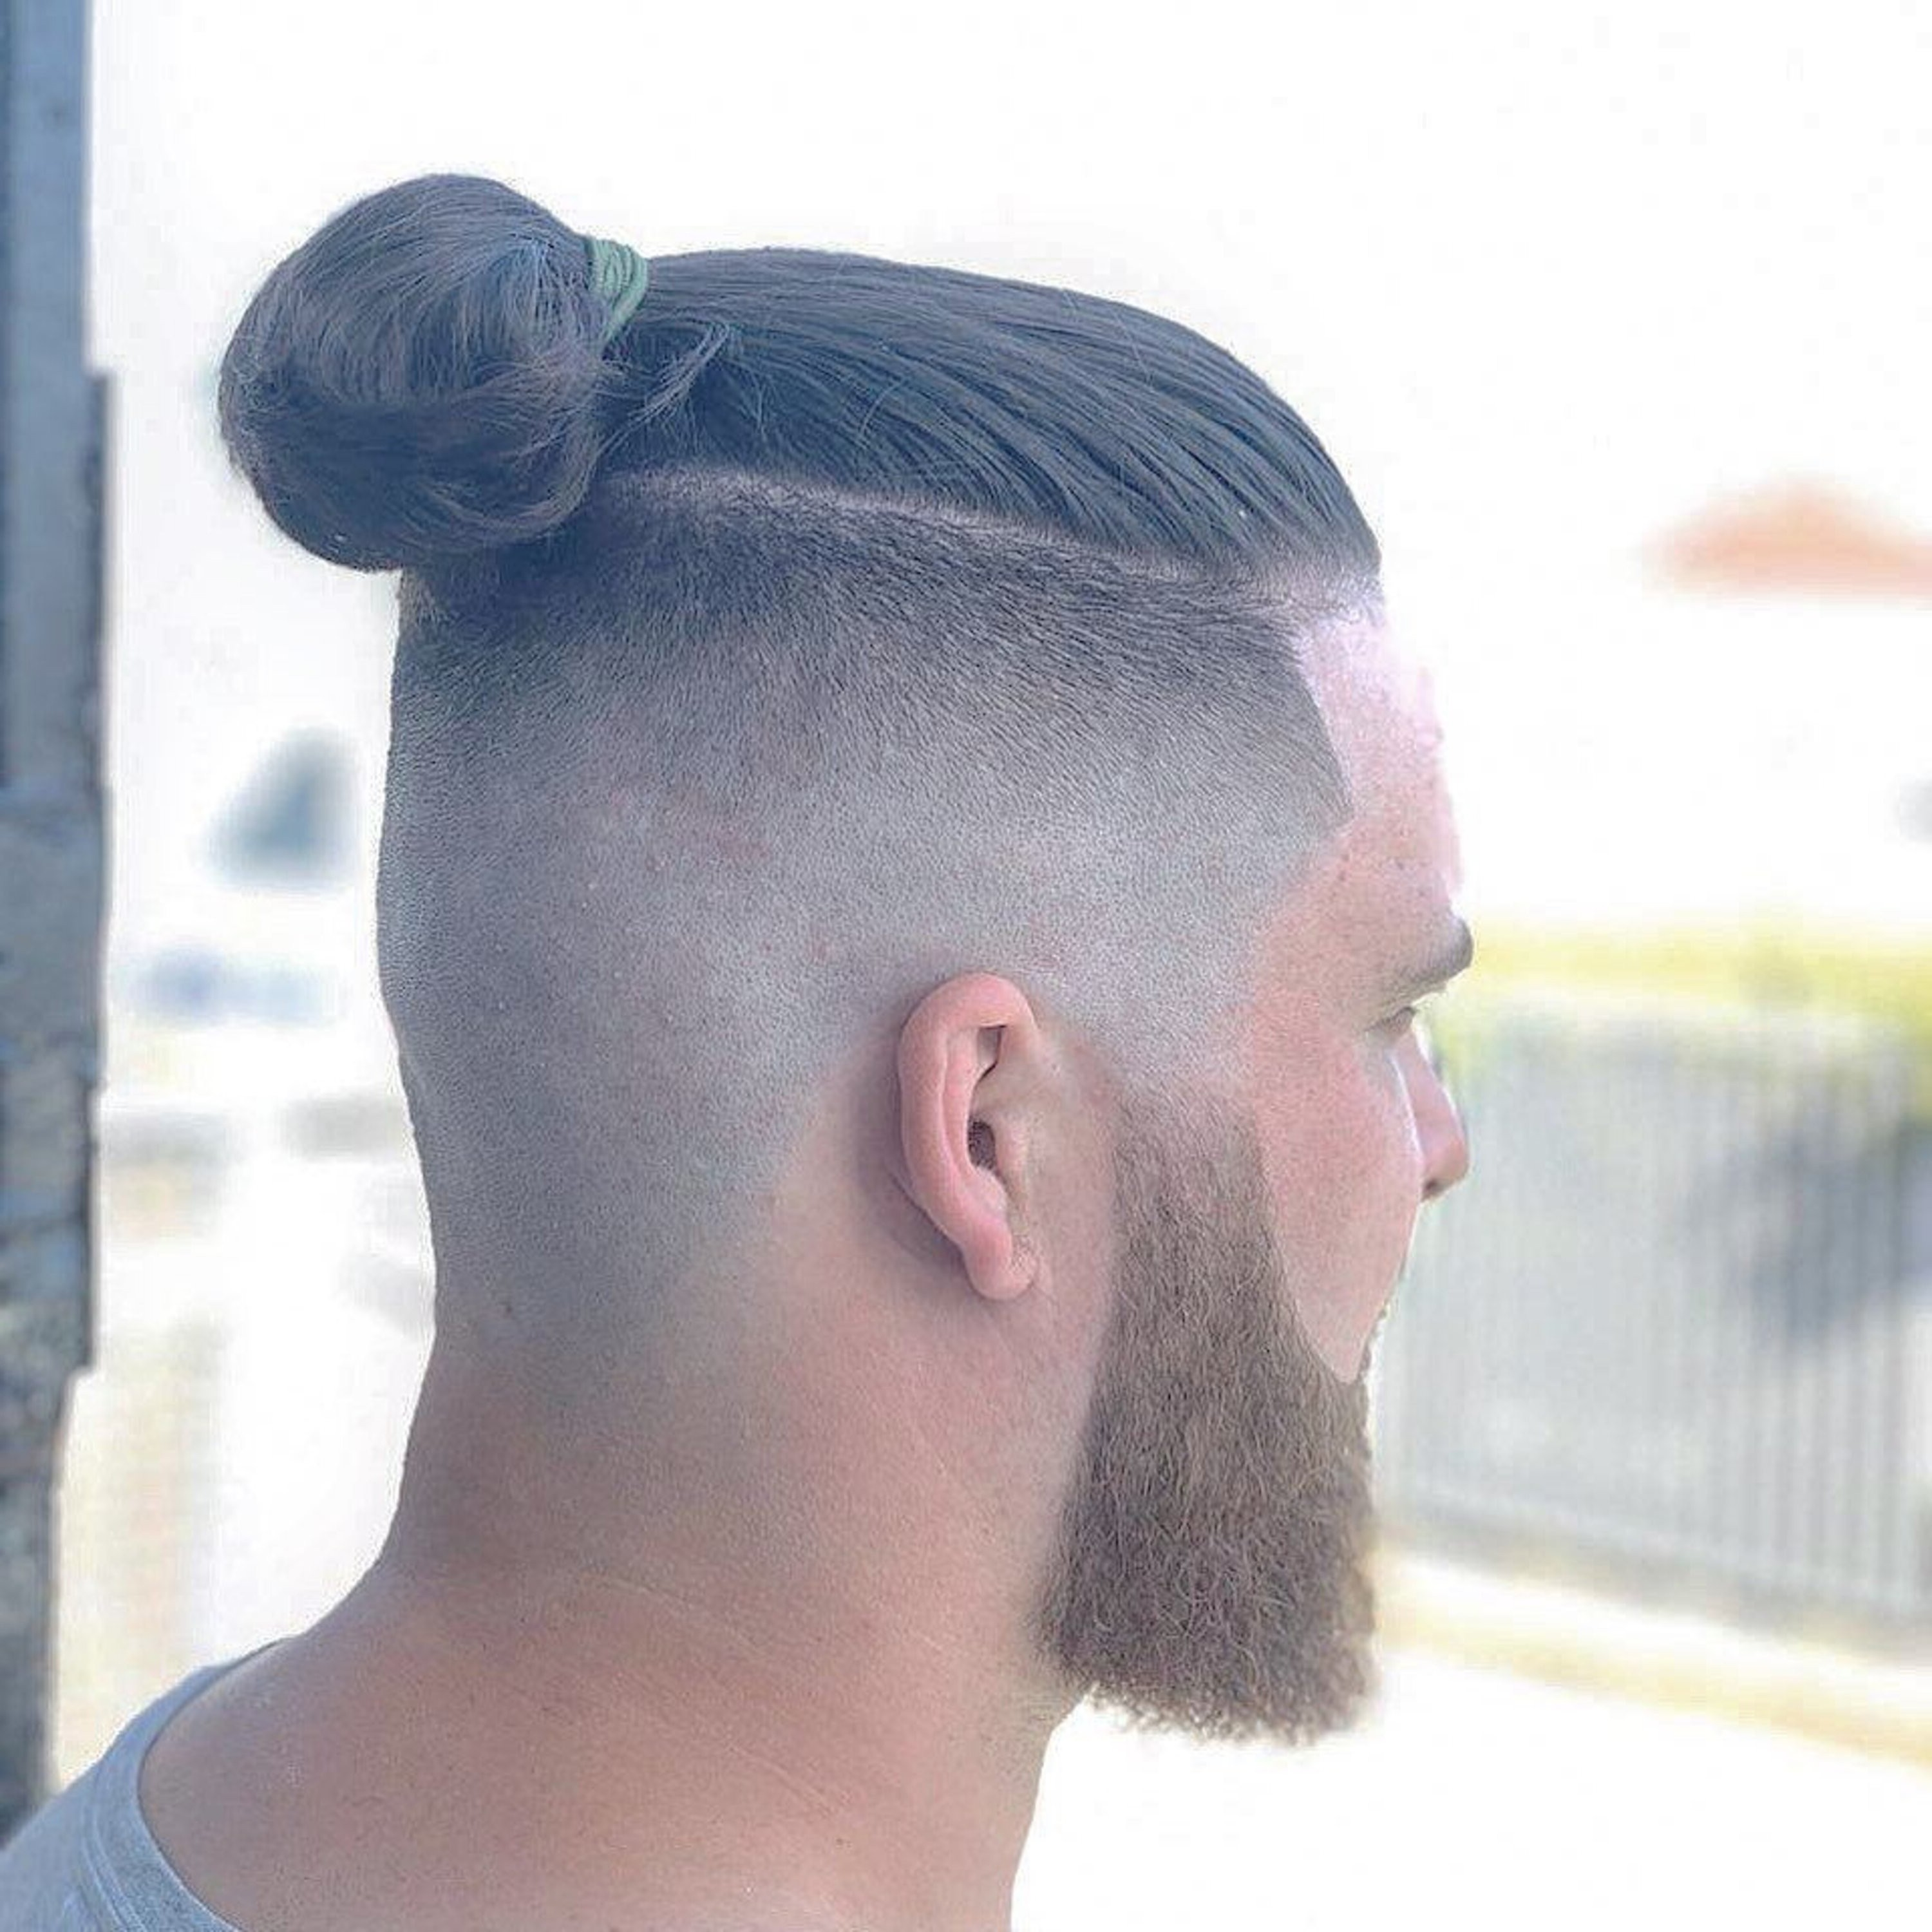 A male bun hairstyle with a comb over.